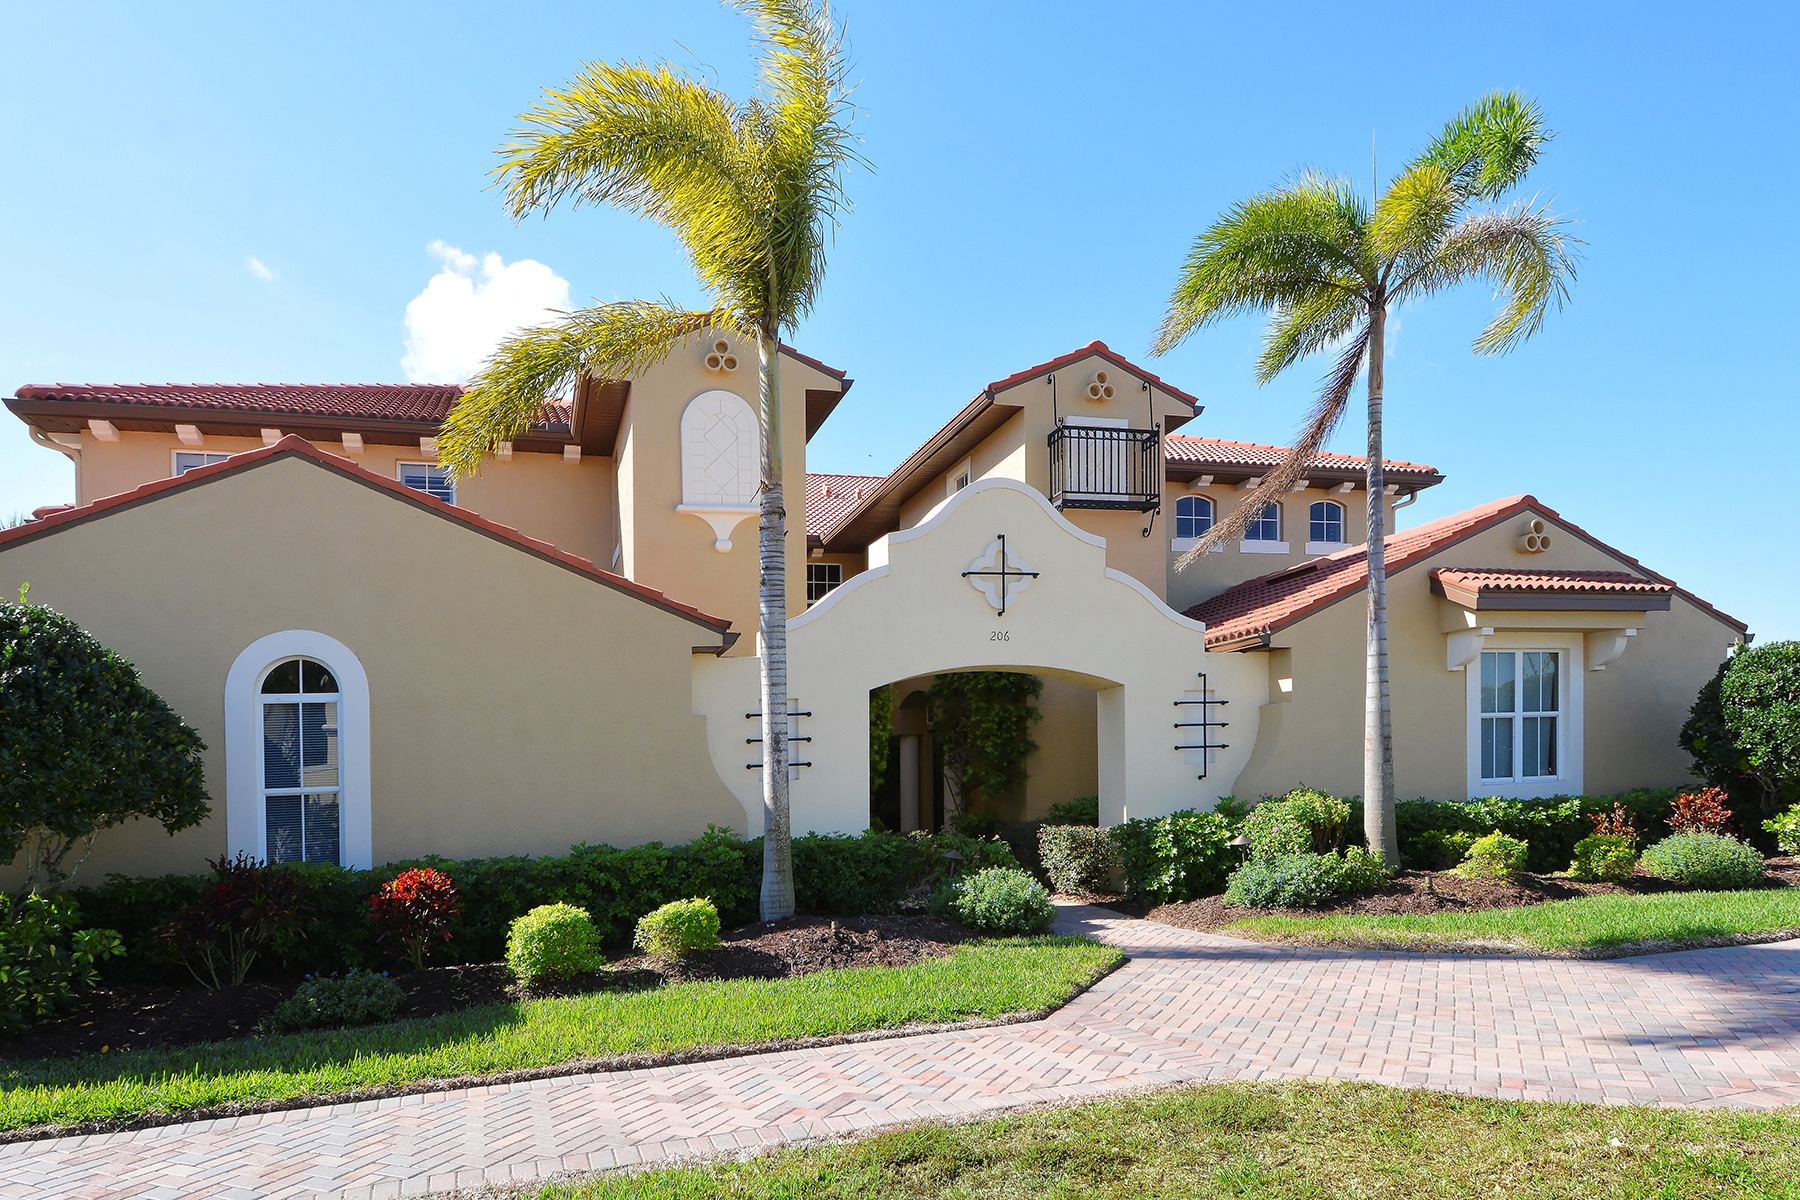 Condominio por un Venta en VENETIAN GOLF & RIVER CLUB 206 Bella Vista Terr 29D North Venice, Florida, 34275 Estados Unidos